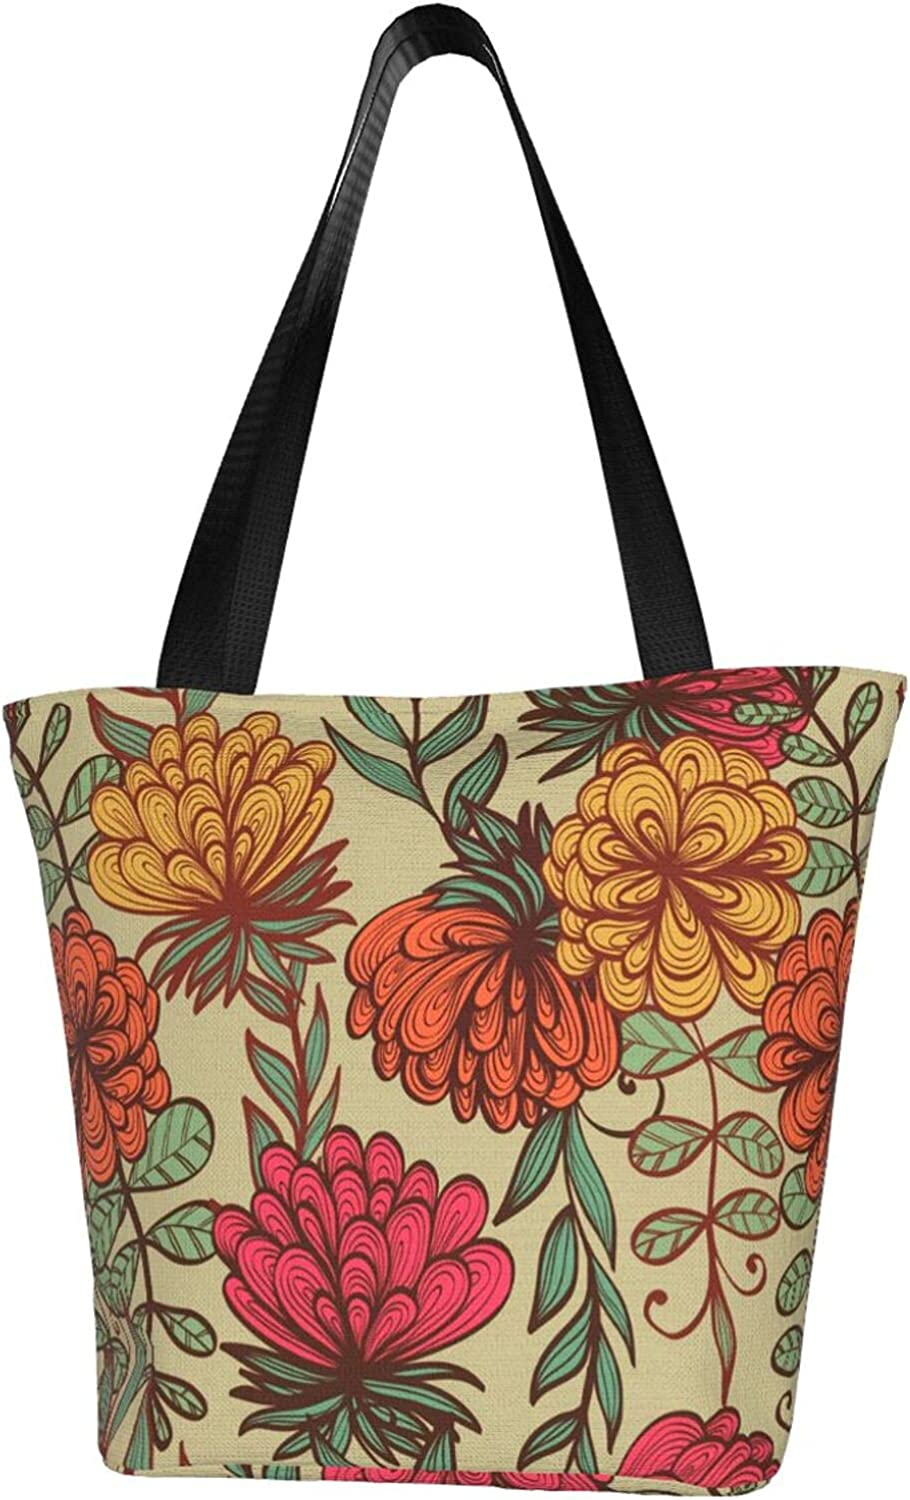 Women's shoulder bag with Zipper Motif of Entangled Floral Branch 1 Tote Casual Hobo Bags canvas Handbags